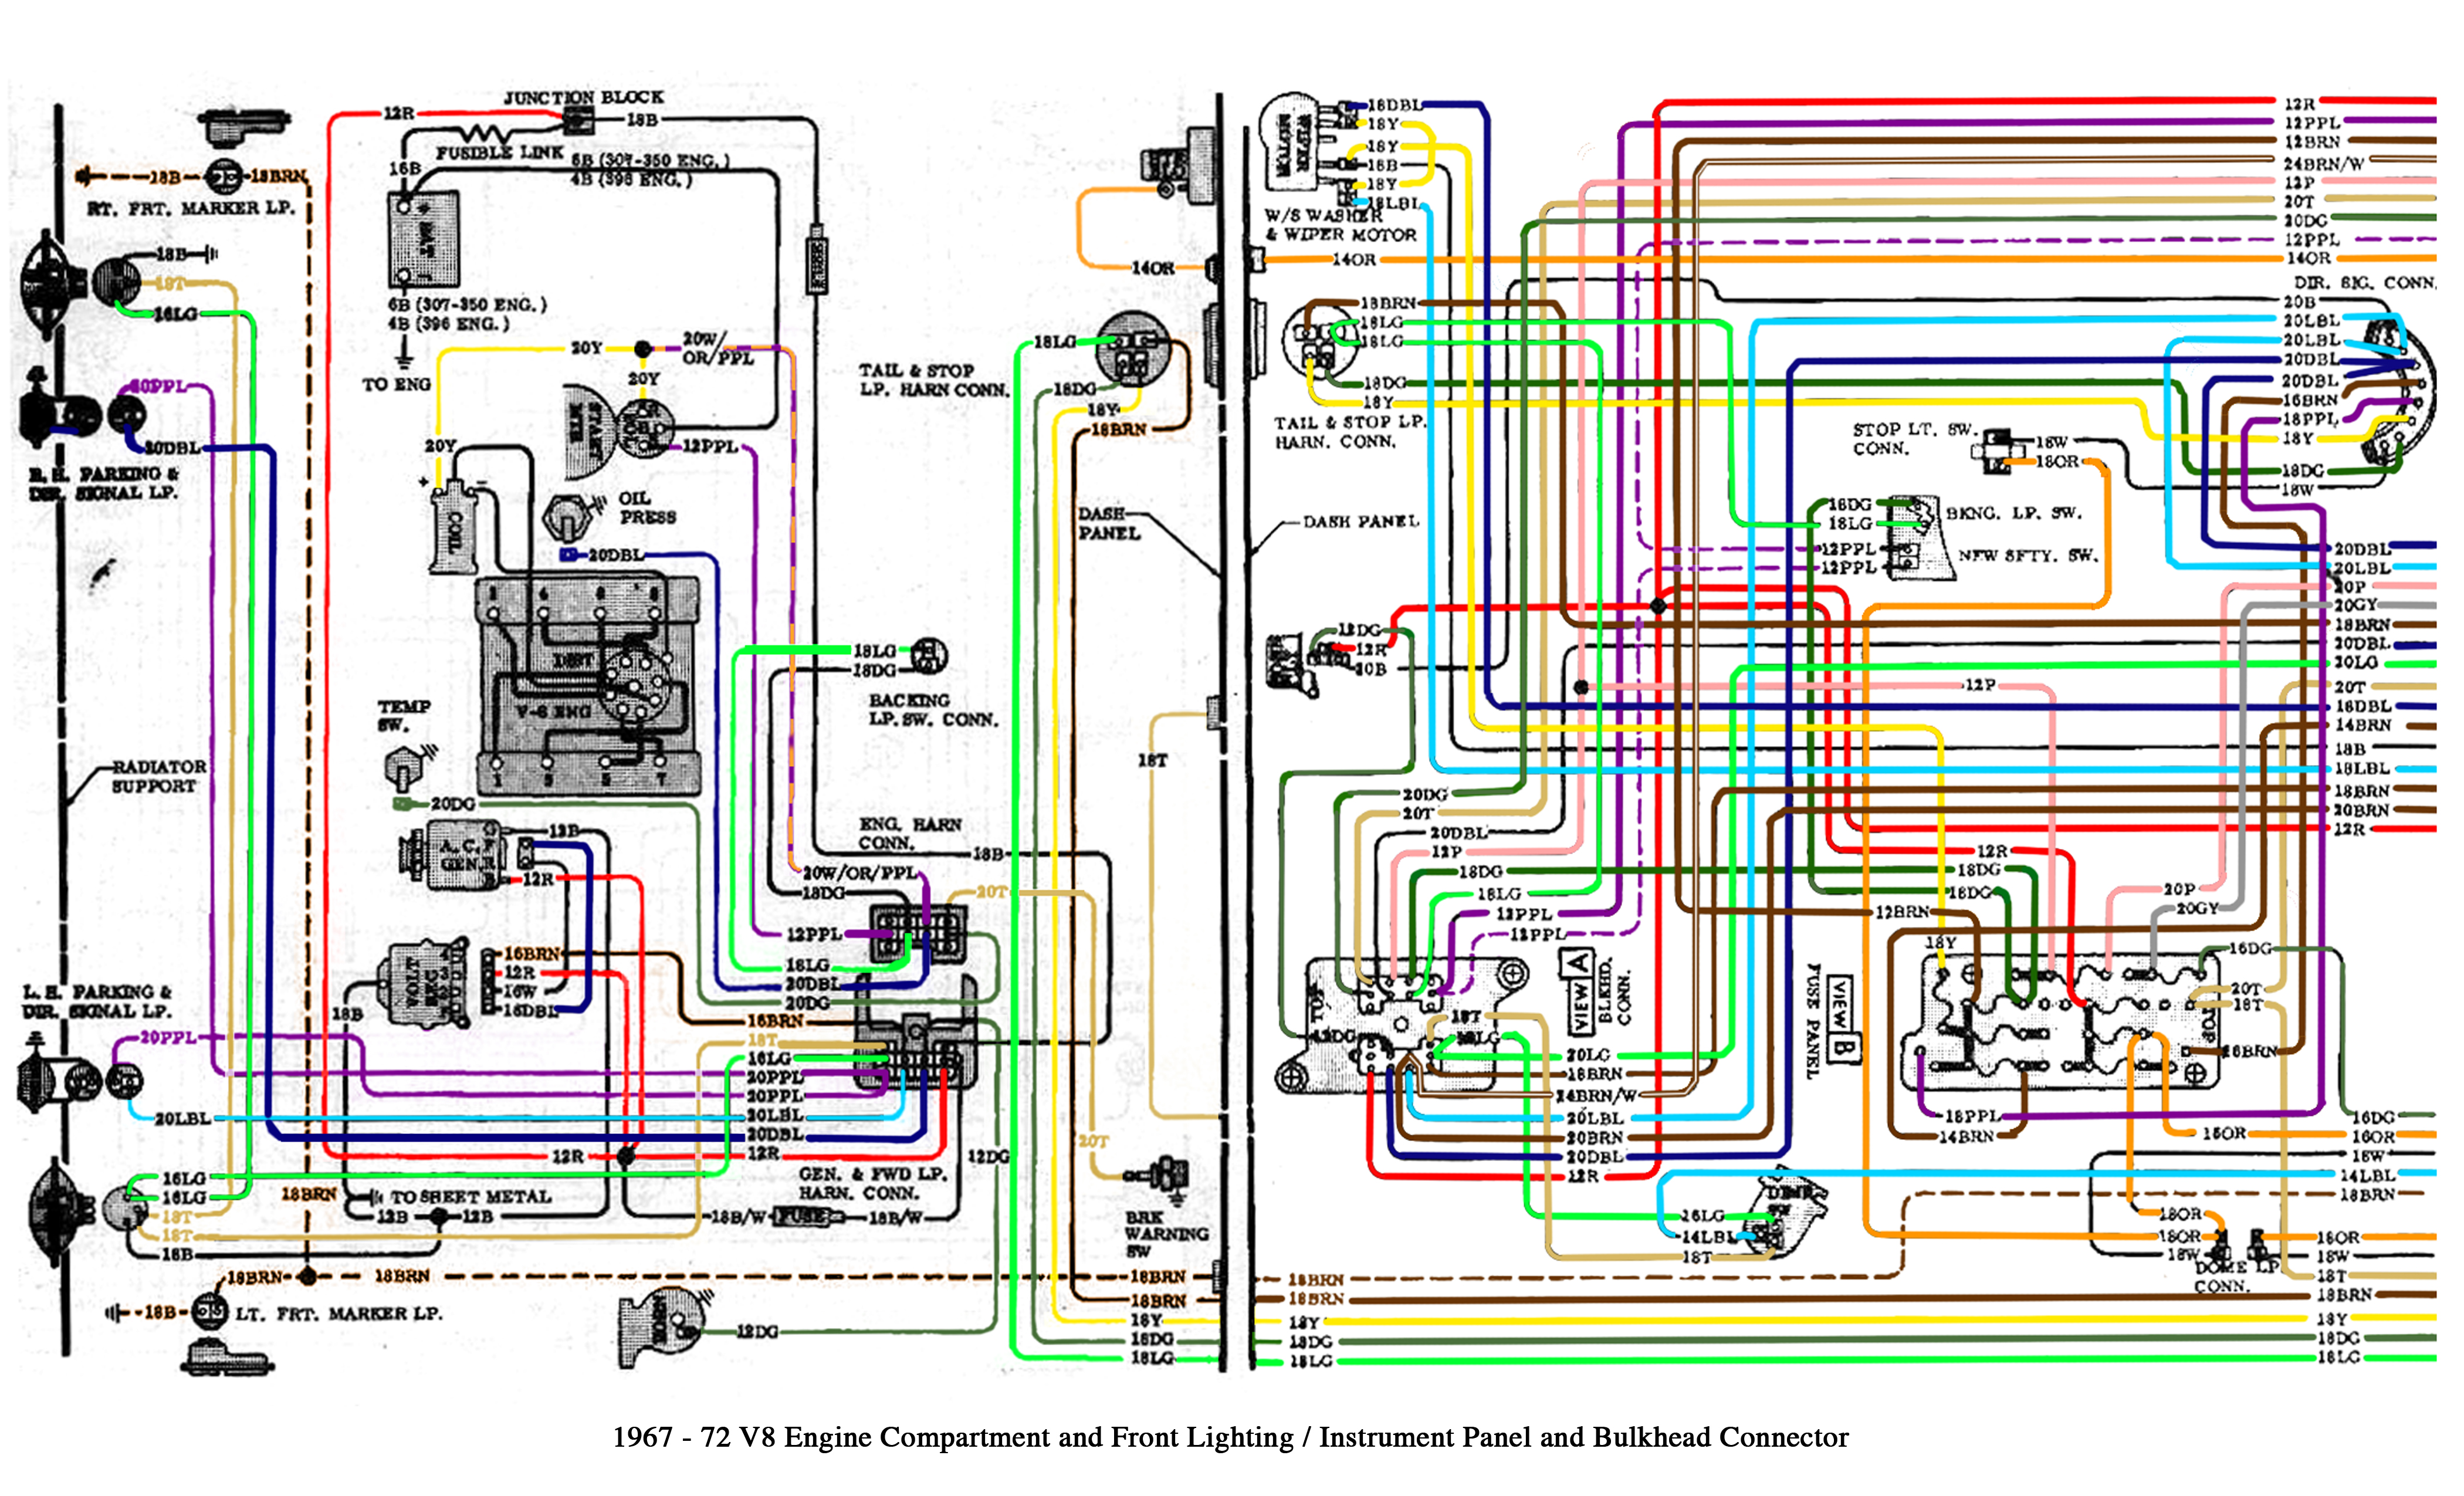 91 Chevy Pickup Wiring Diagram Get Free Image About Wiring Diagram